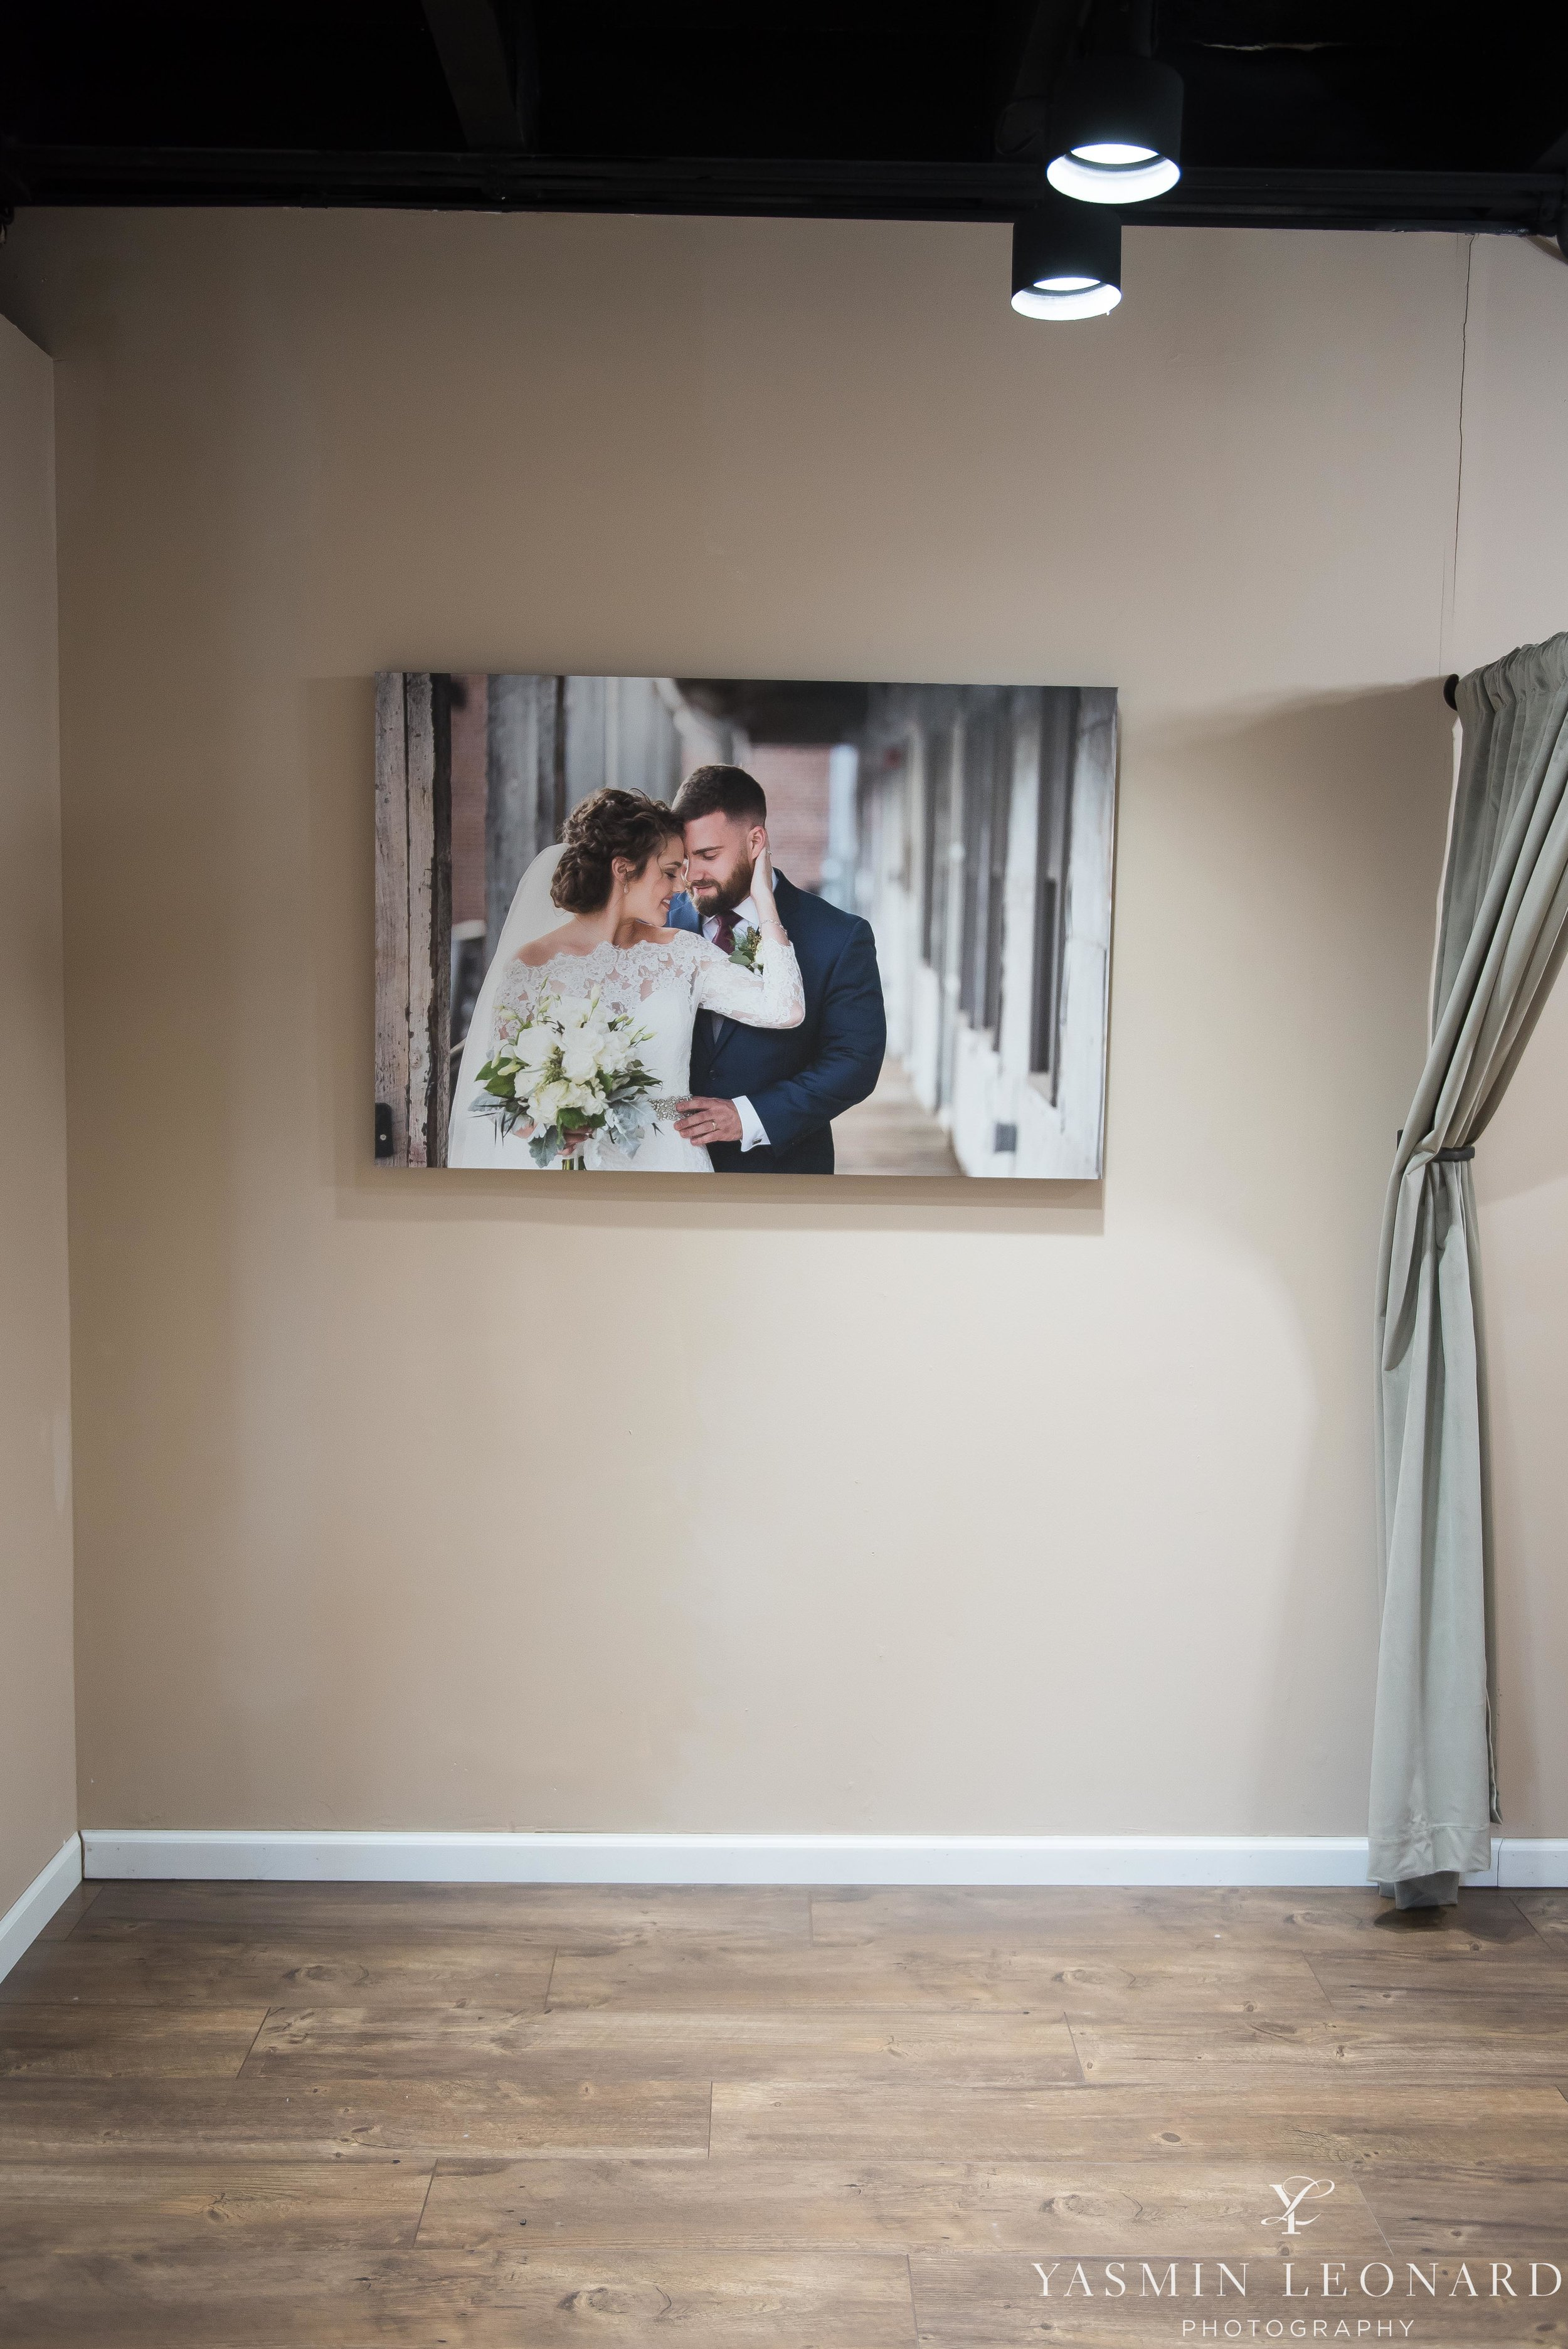 Dashing Dames Bridal and Boutique - High Point Bridal Shop - Bridal Store in High Point - Yasmin Leonard Photography-3.jpg